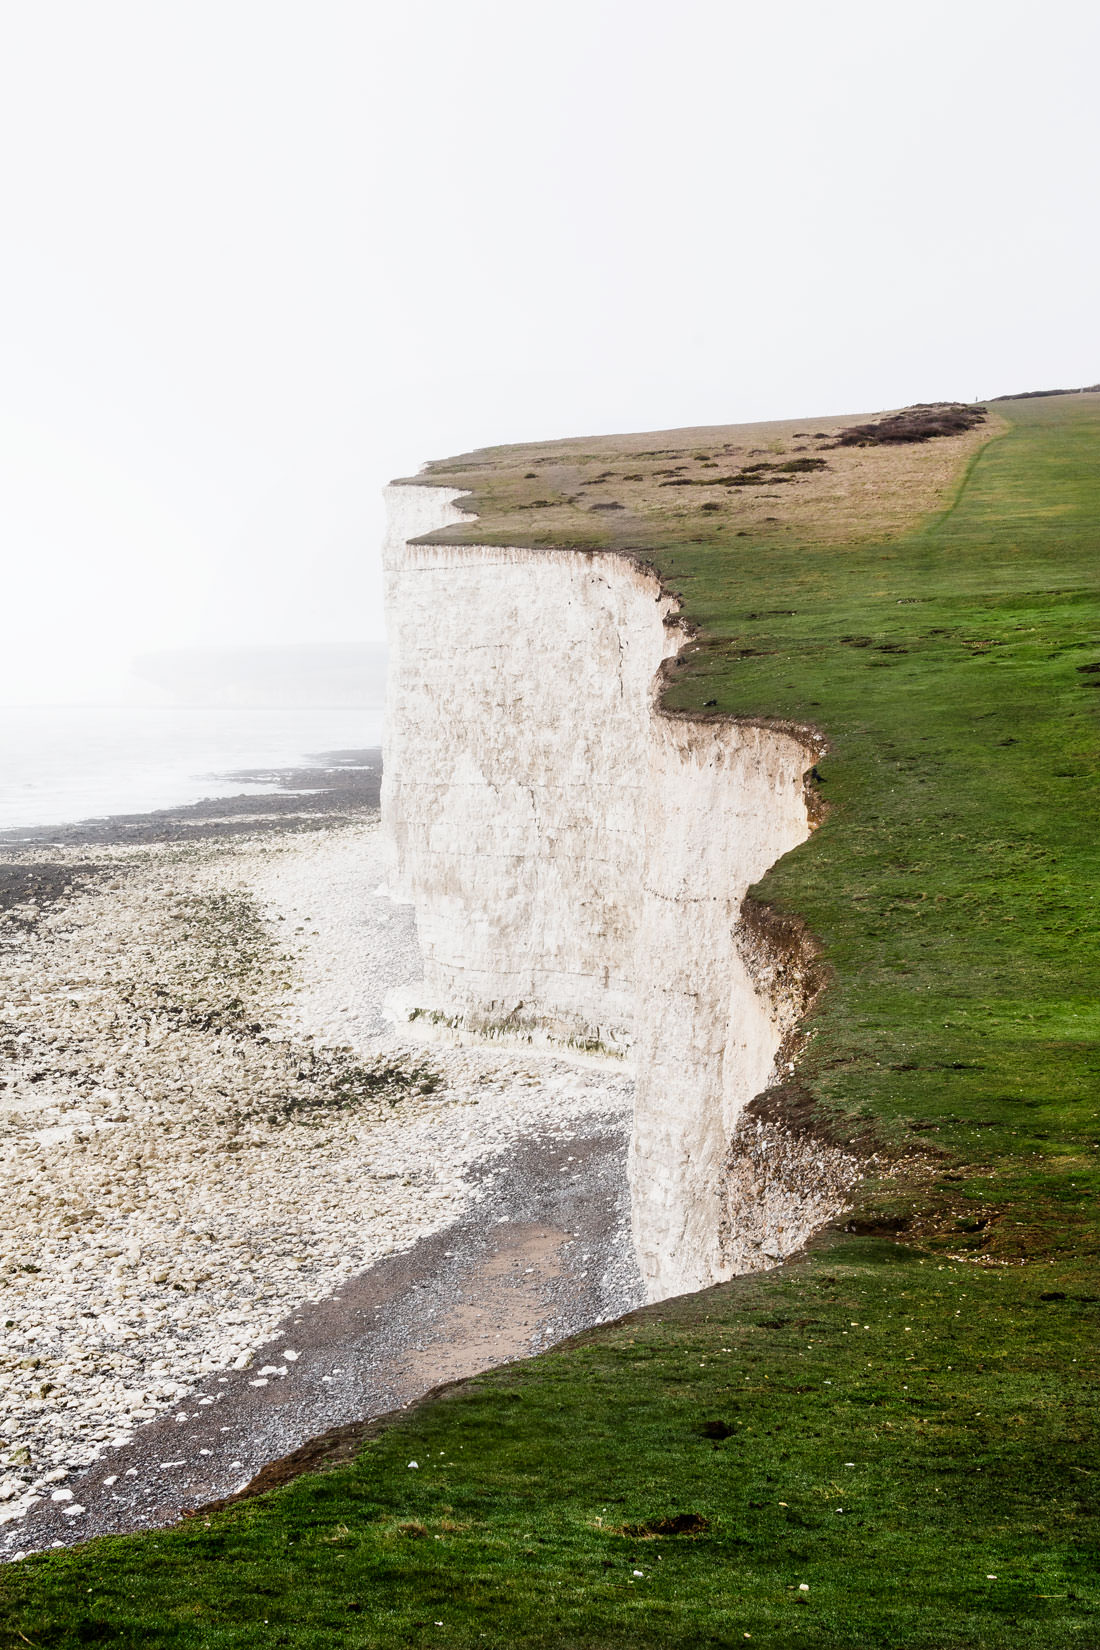 The white cliffs of England - a travel guide to The Seven Sisters